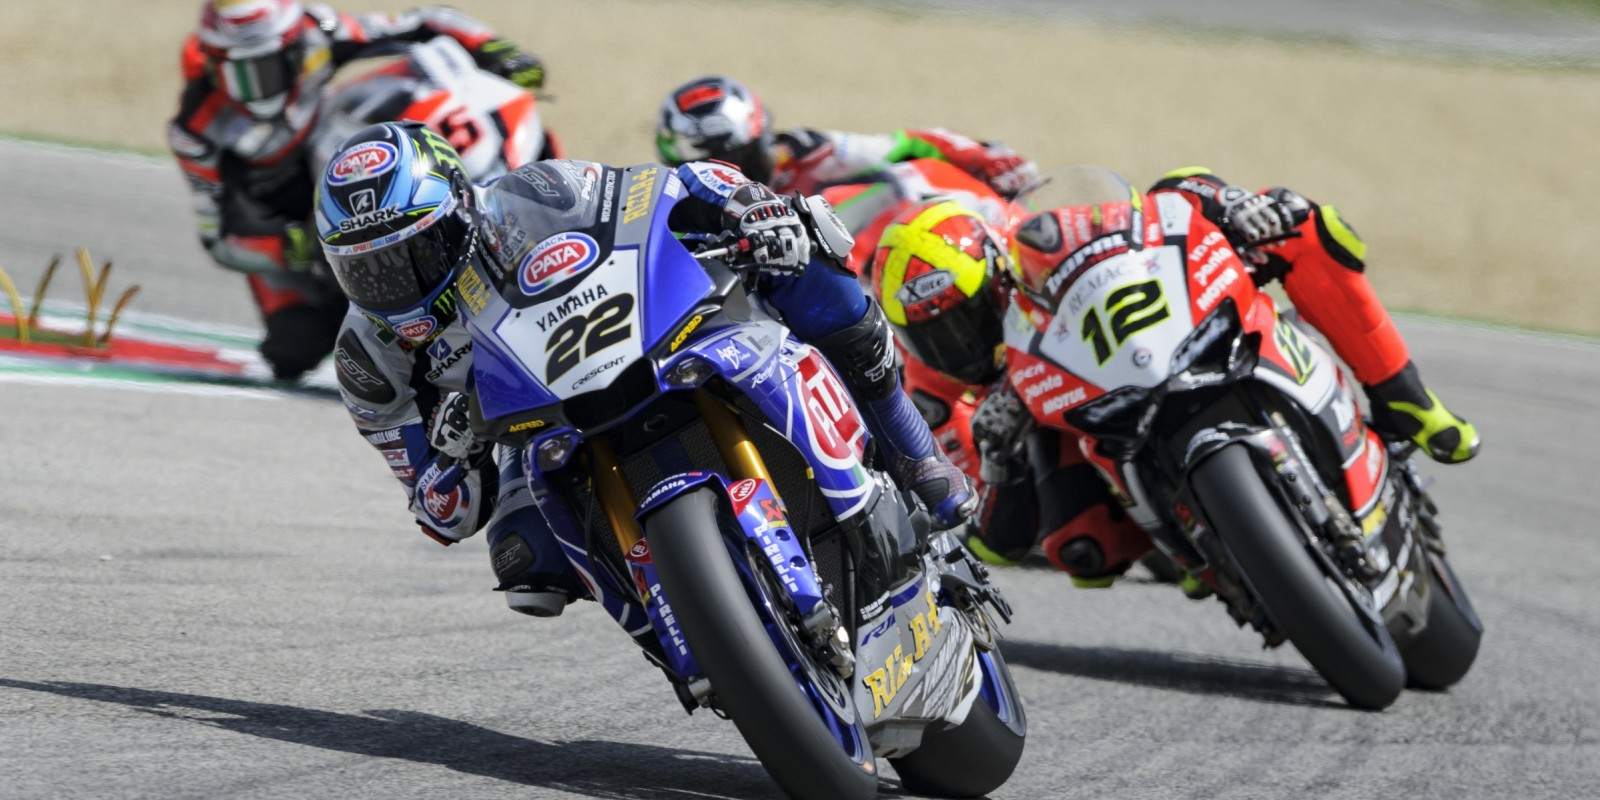 Alex Lowes in action at Imola for the fourth round of 2016 WorldSBK